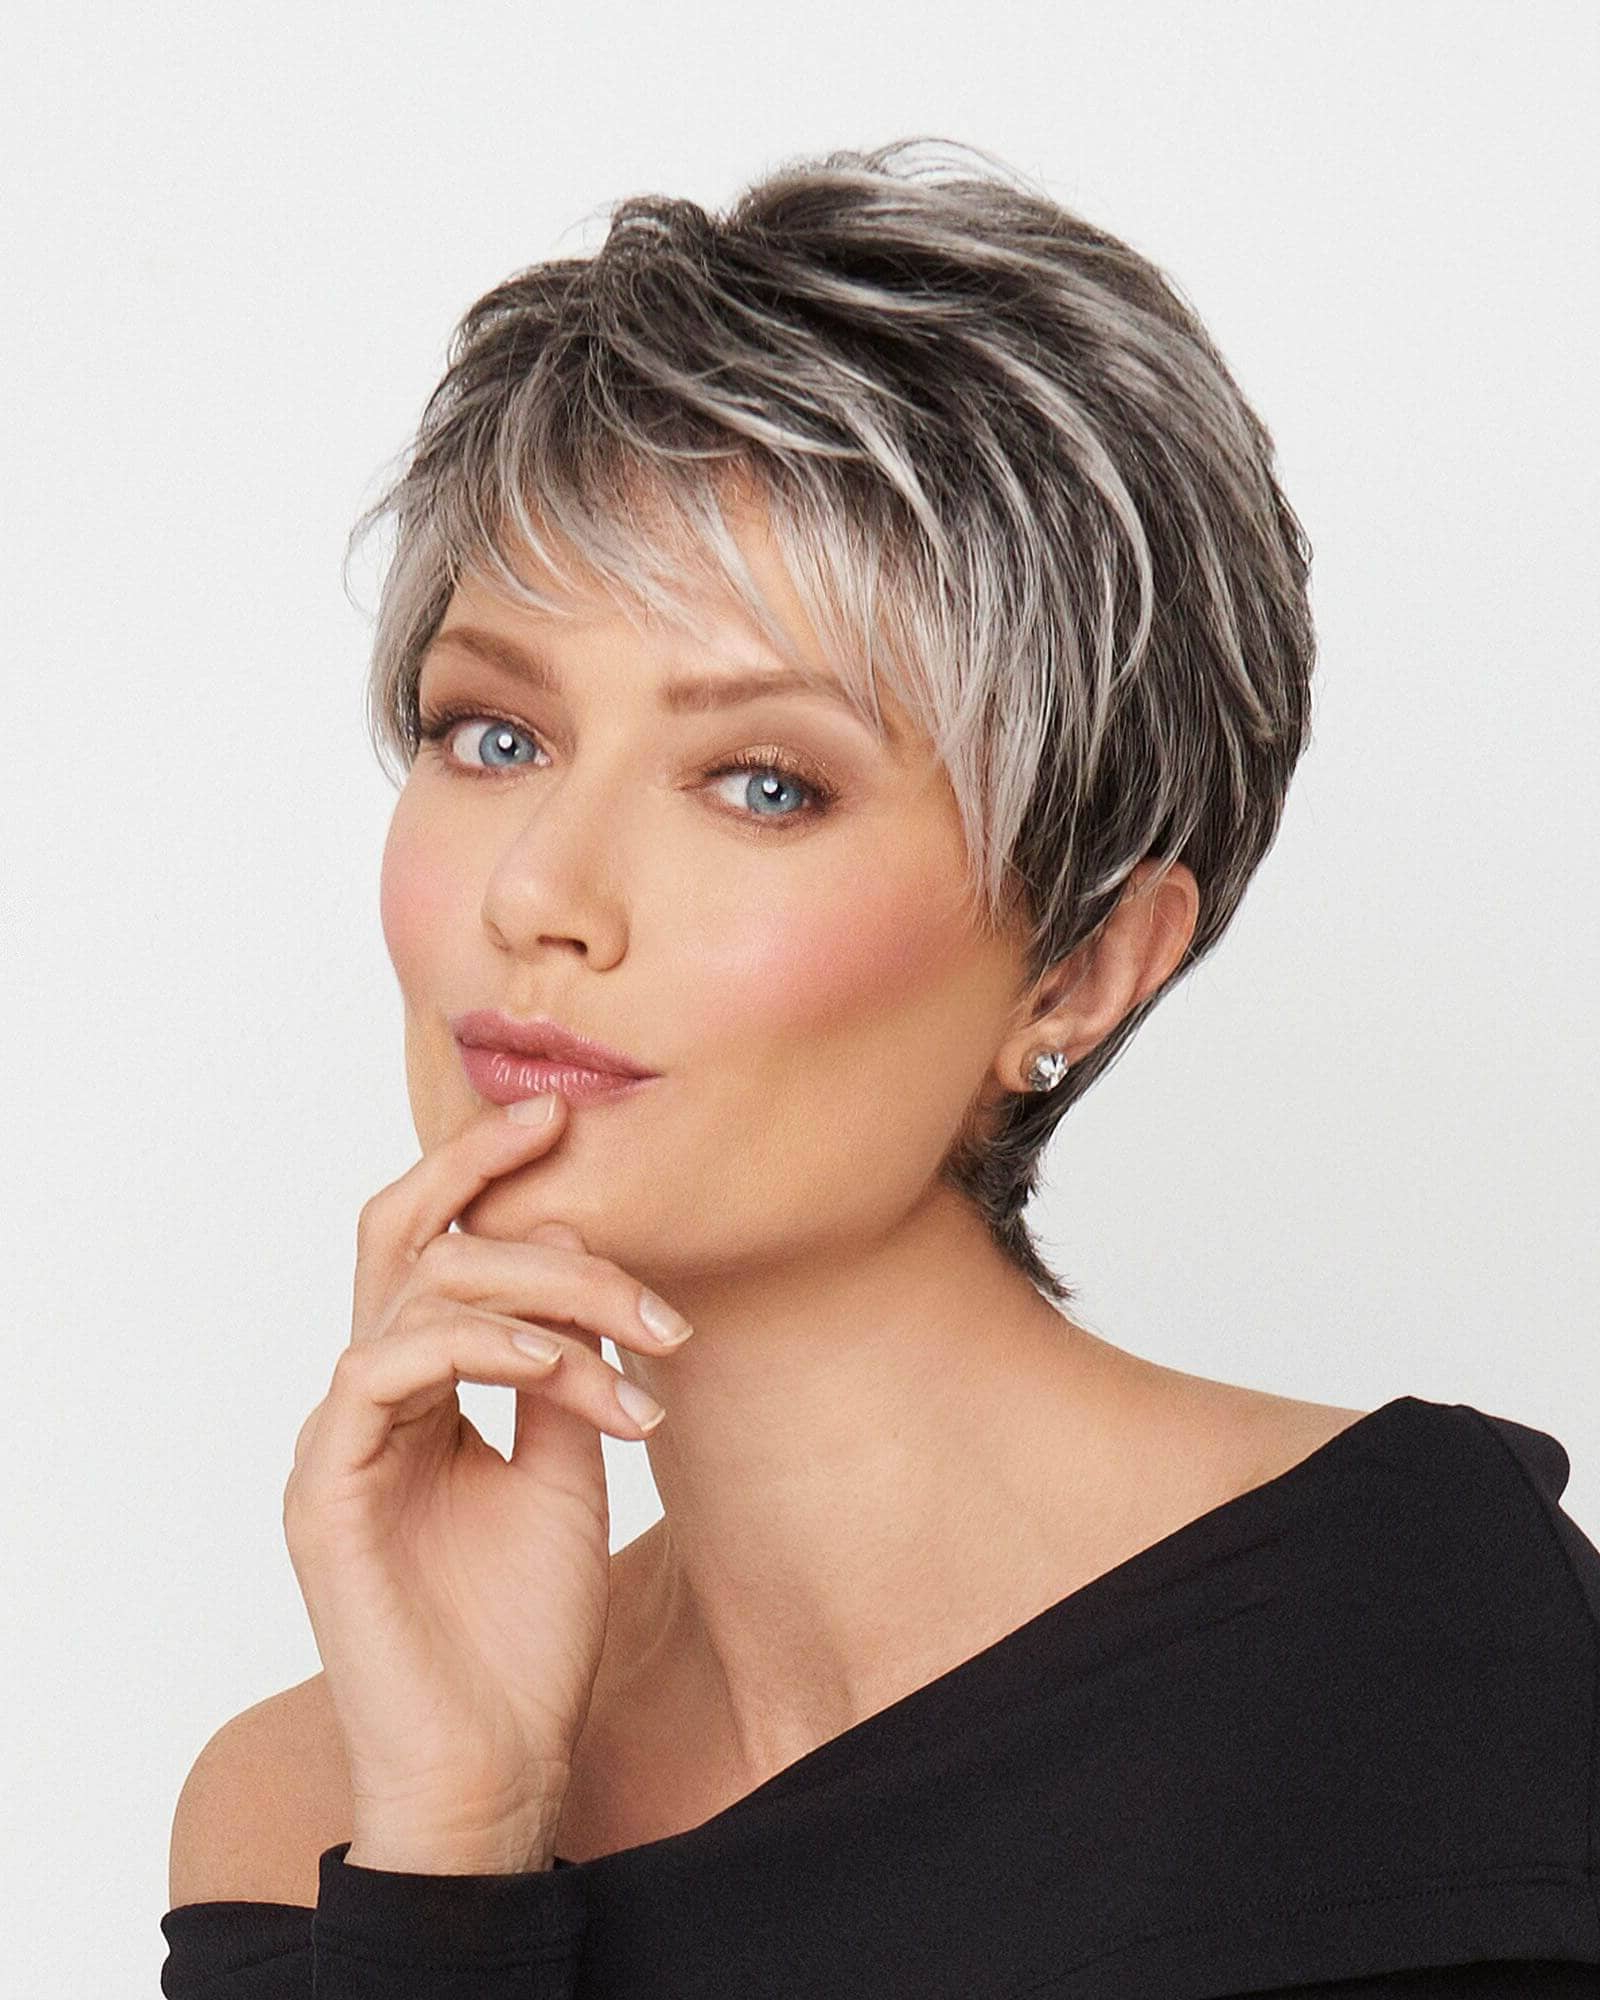 50 Pixie Haircuts You'll See Trending In 2018 Regarding Edgy Pixie Haircuts With Long Angled Layers (View 12 of 20)